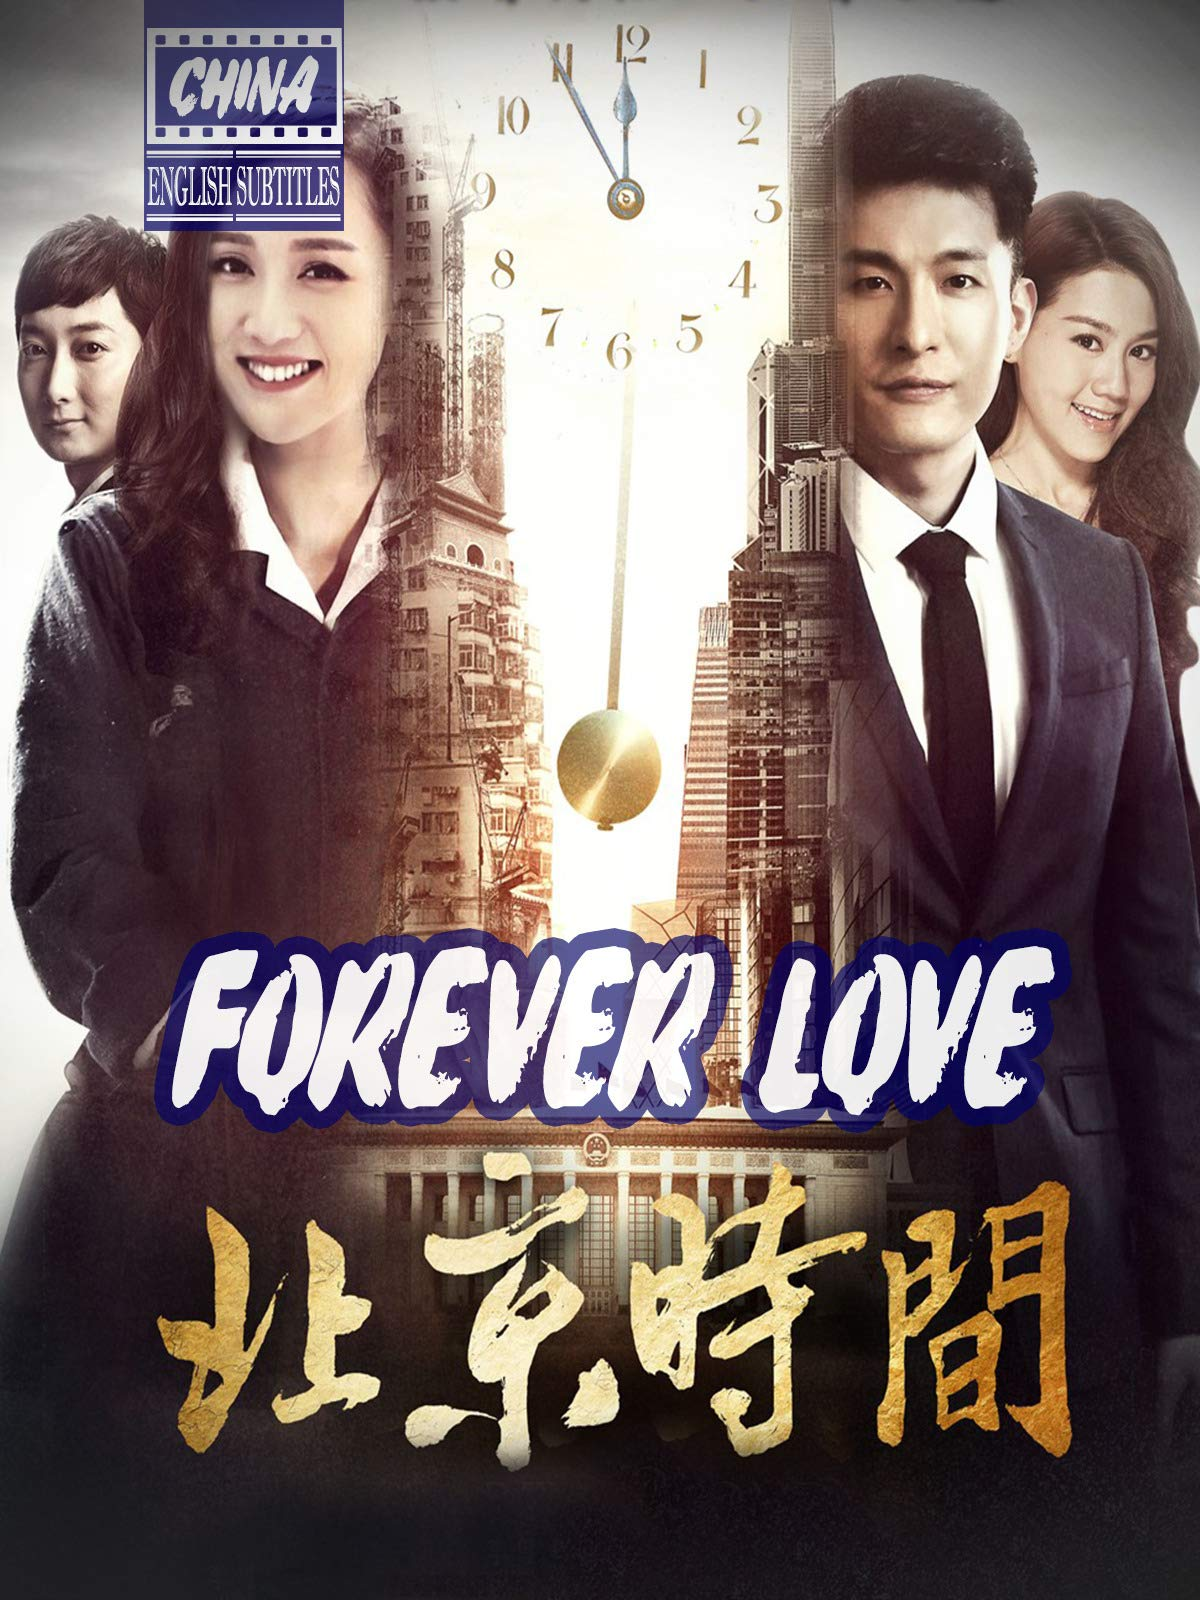 Forever love (english subtitles) China